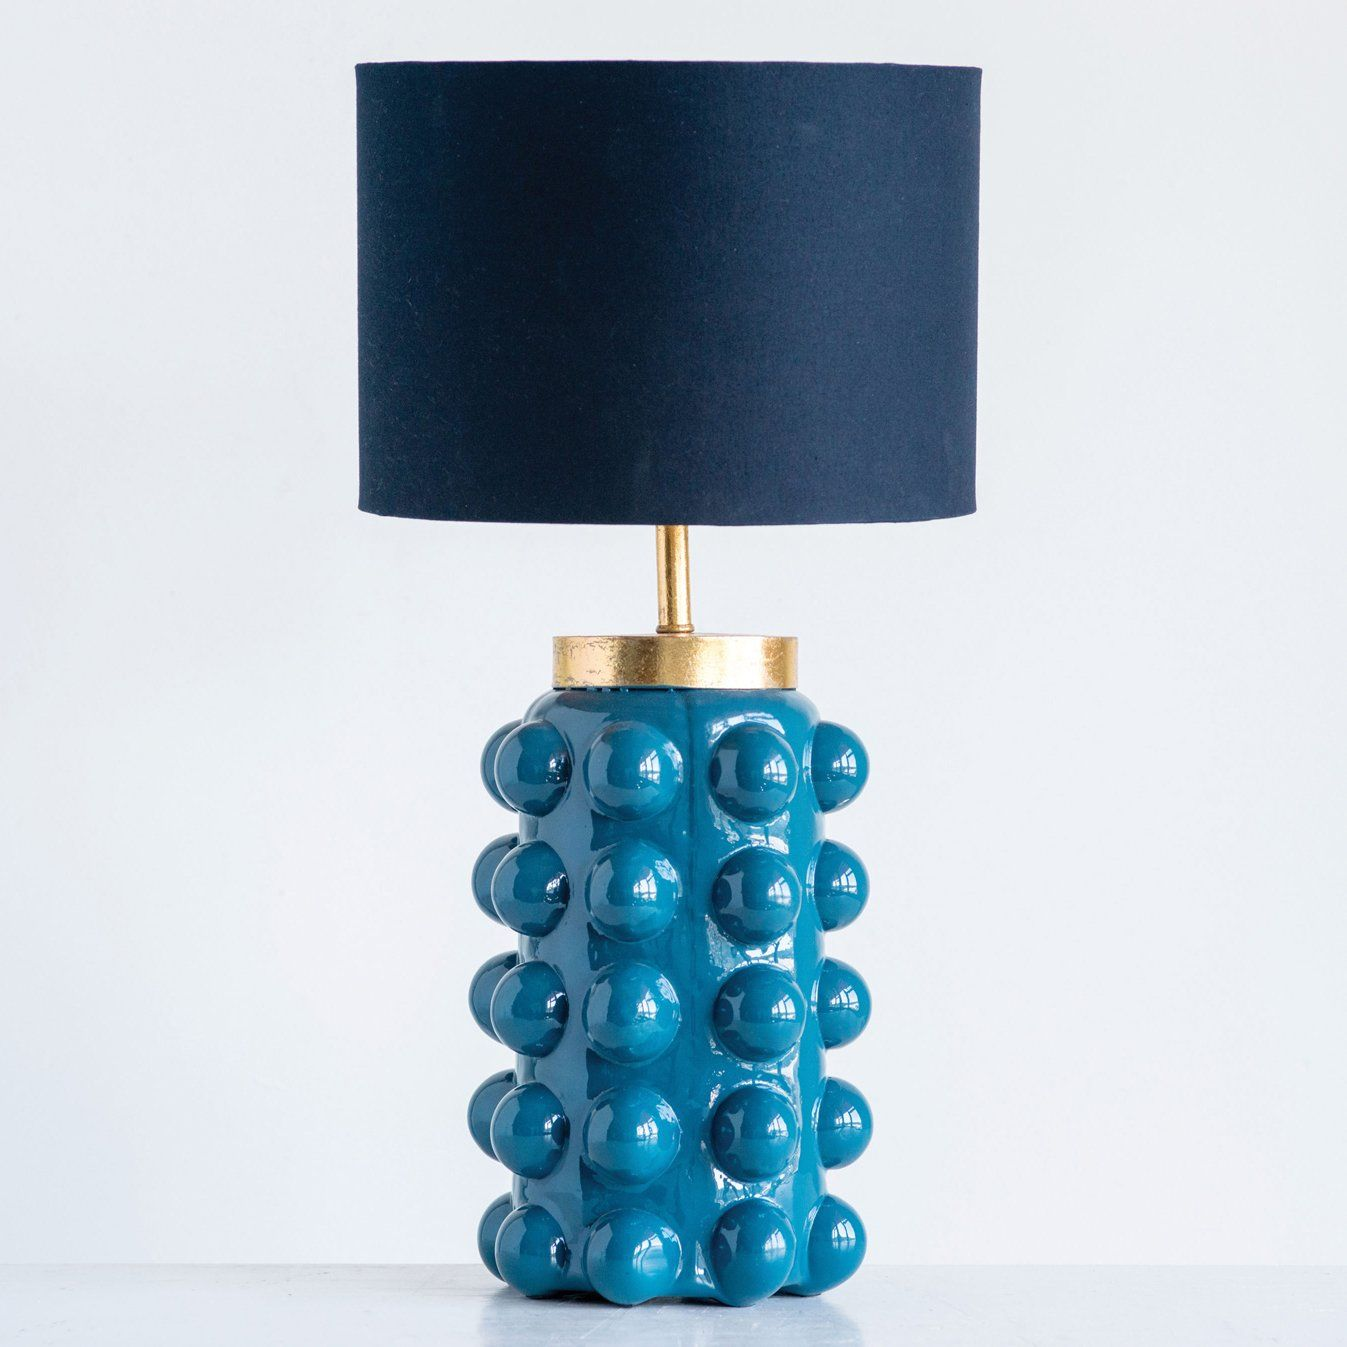 Richmond Table Lamp In 2021 Bubble Table Lamp Teal Table Lamps Table Lamp